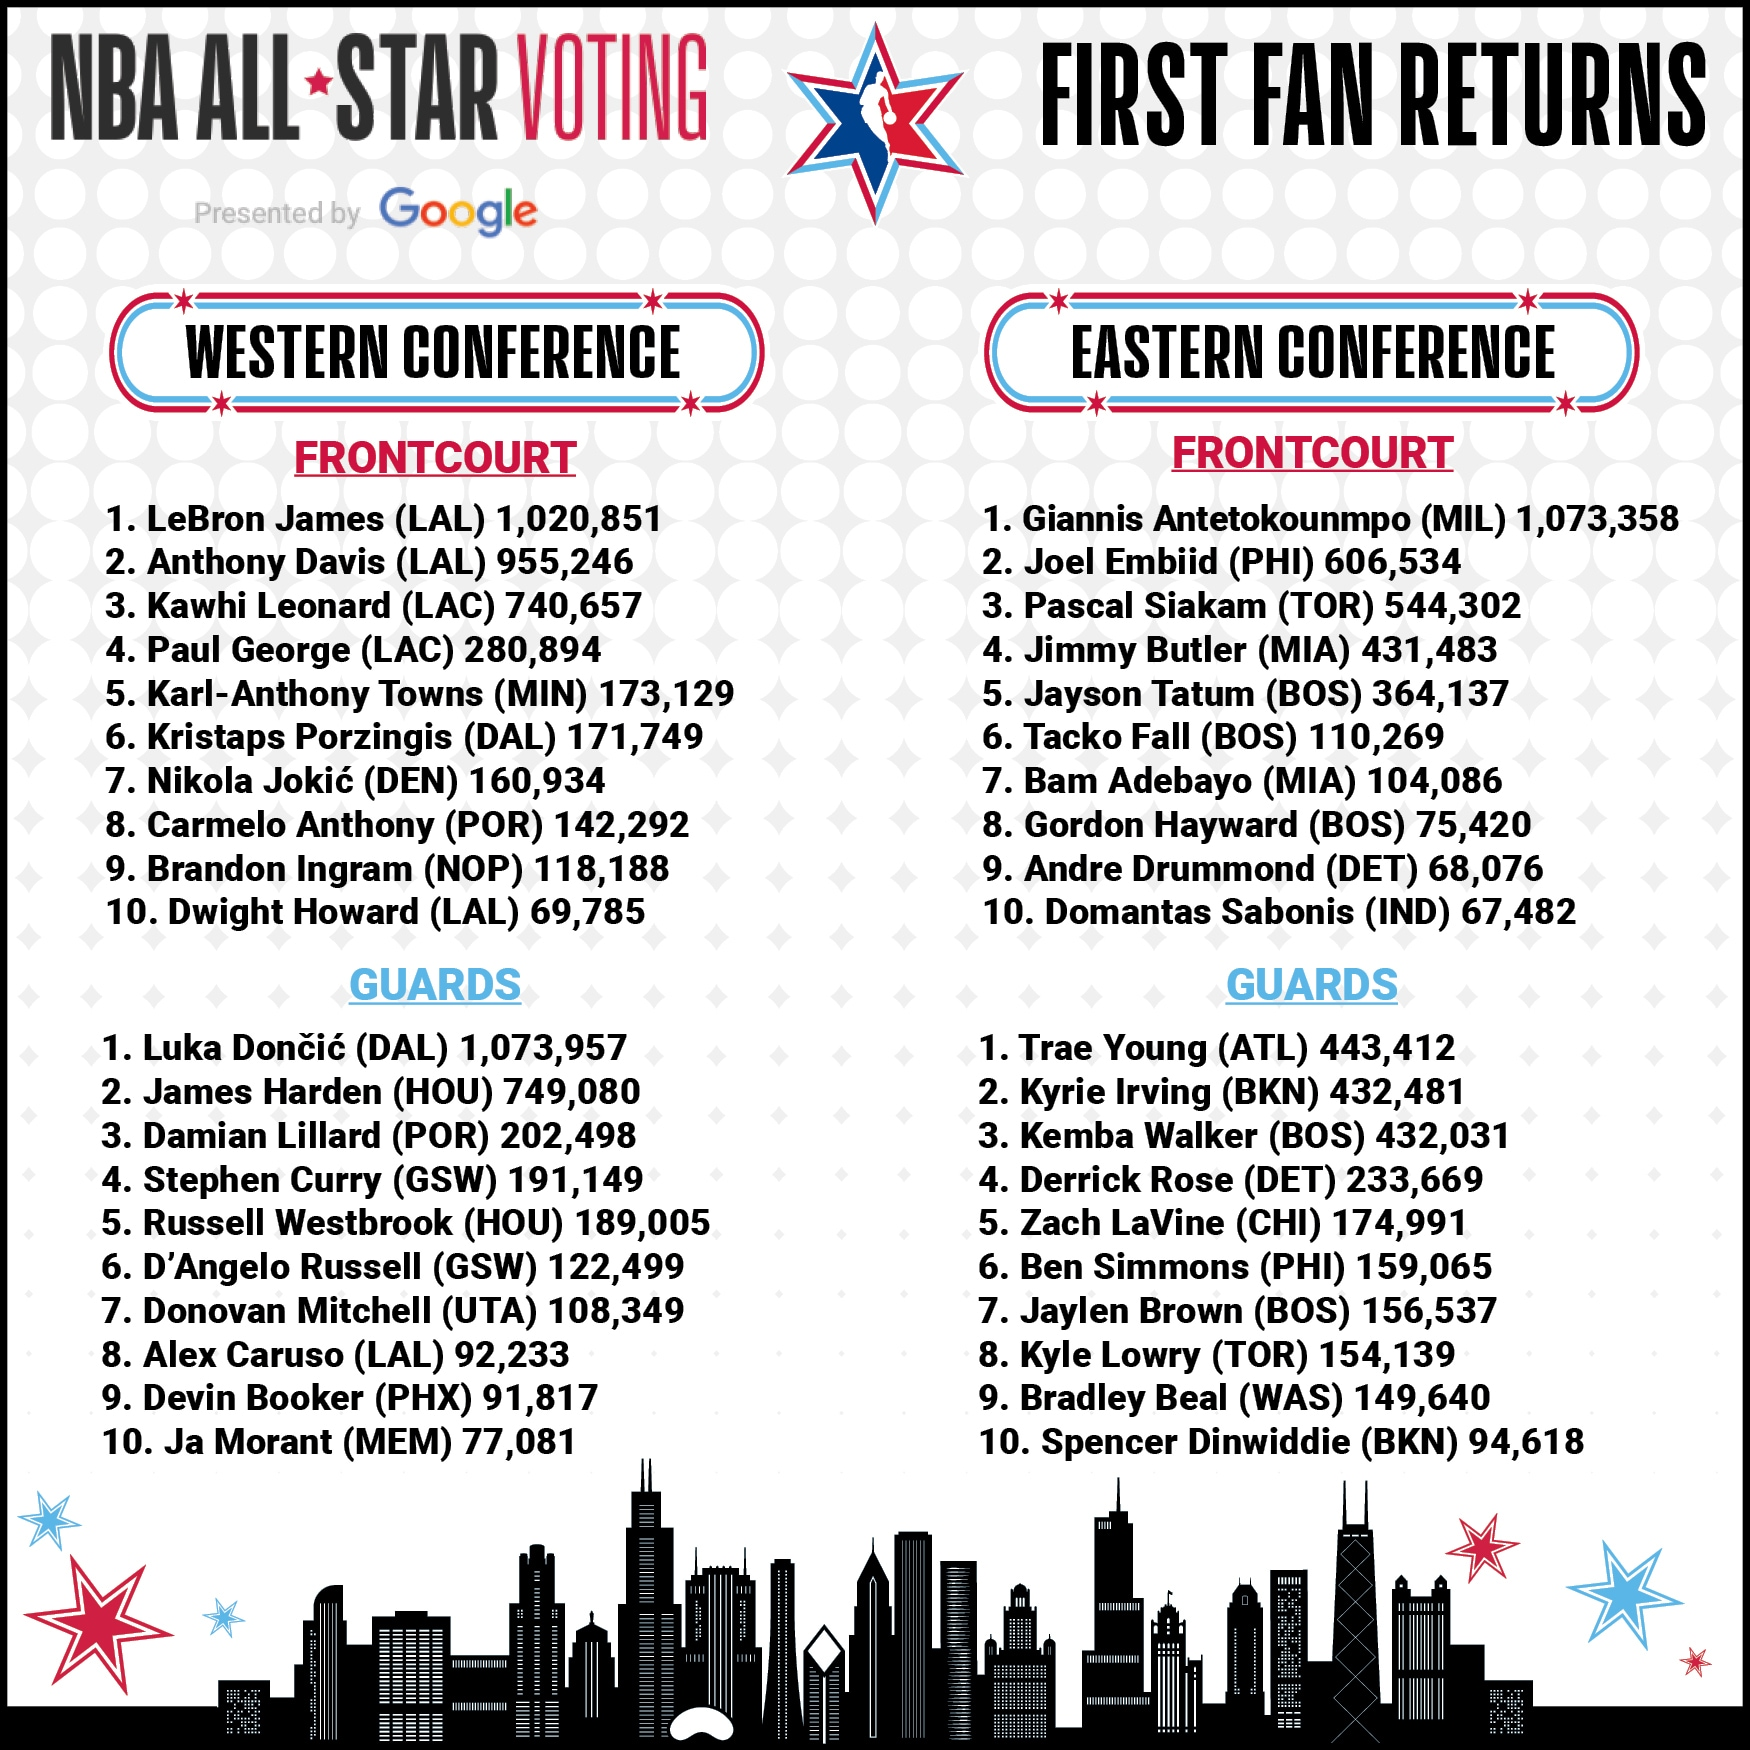 2020 NBA All-Star voting first returns released | NBA.com